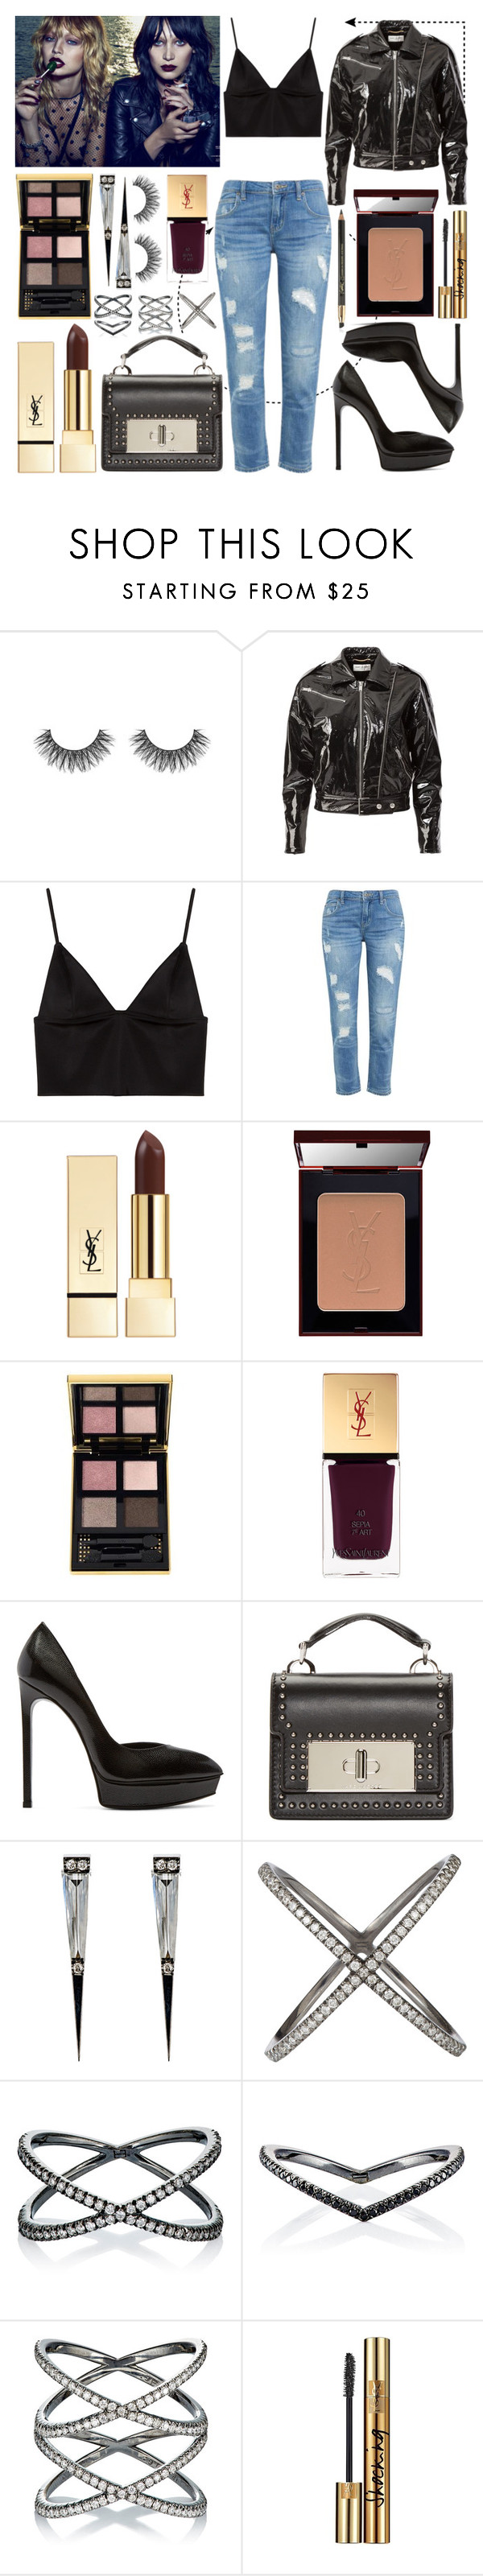 """Day & Night"" by riverinthedesert ❤ liked on Polyvore featuring Yves Saint Laurent, T By Alexander Wang, PUR, Marc Jacobs and Eva Fehren"